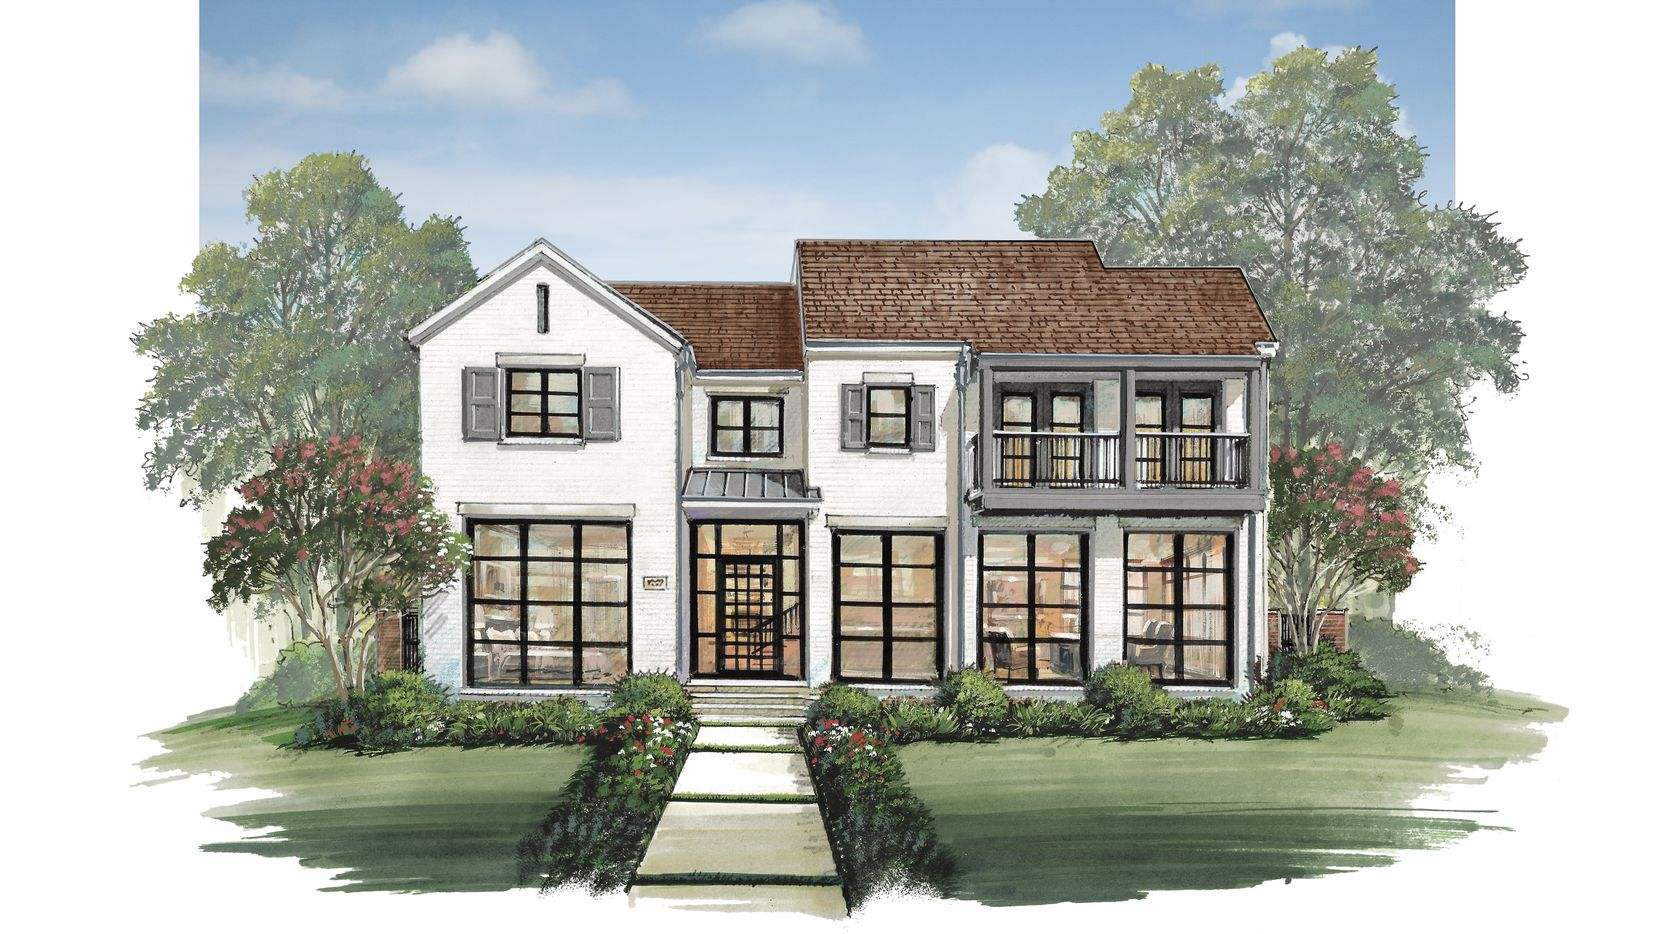 This is an artist's rendering of Alford Homes' modern design under construction at 3700 Bryn Mawr Drive in University Park. It is priced at $3,925,000.